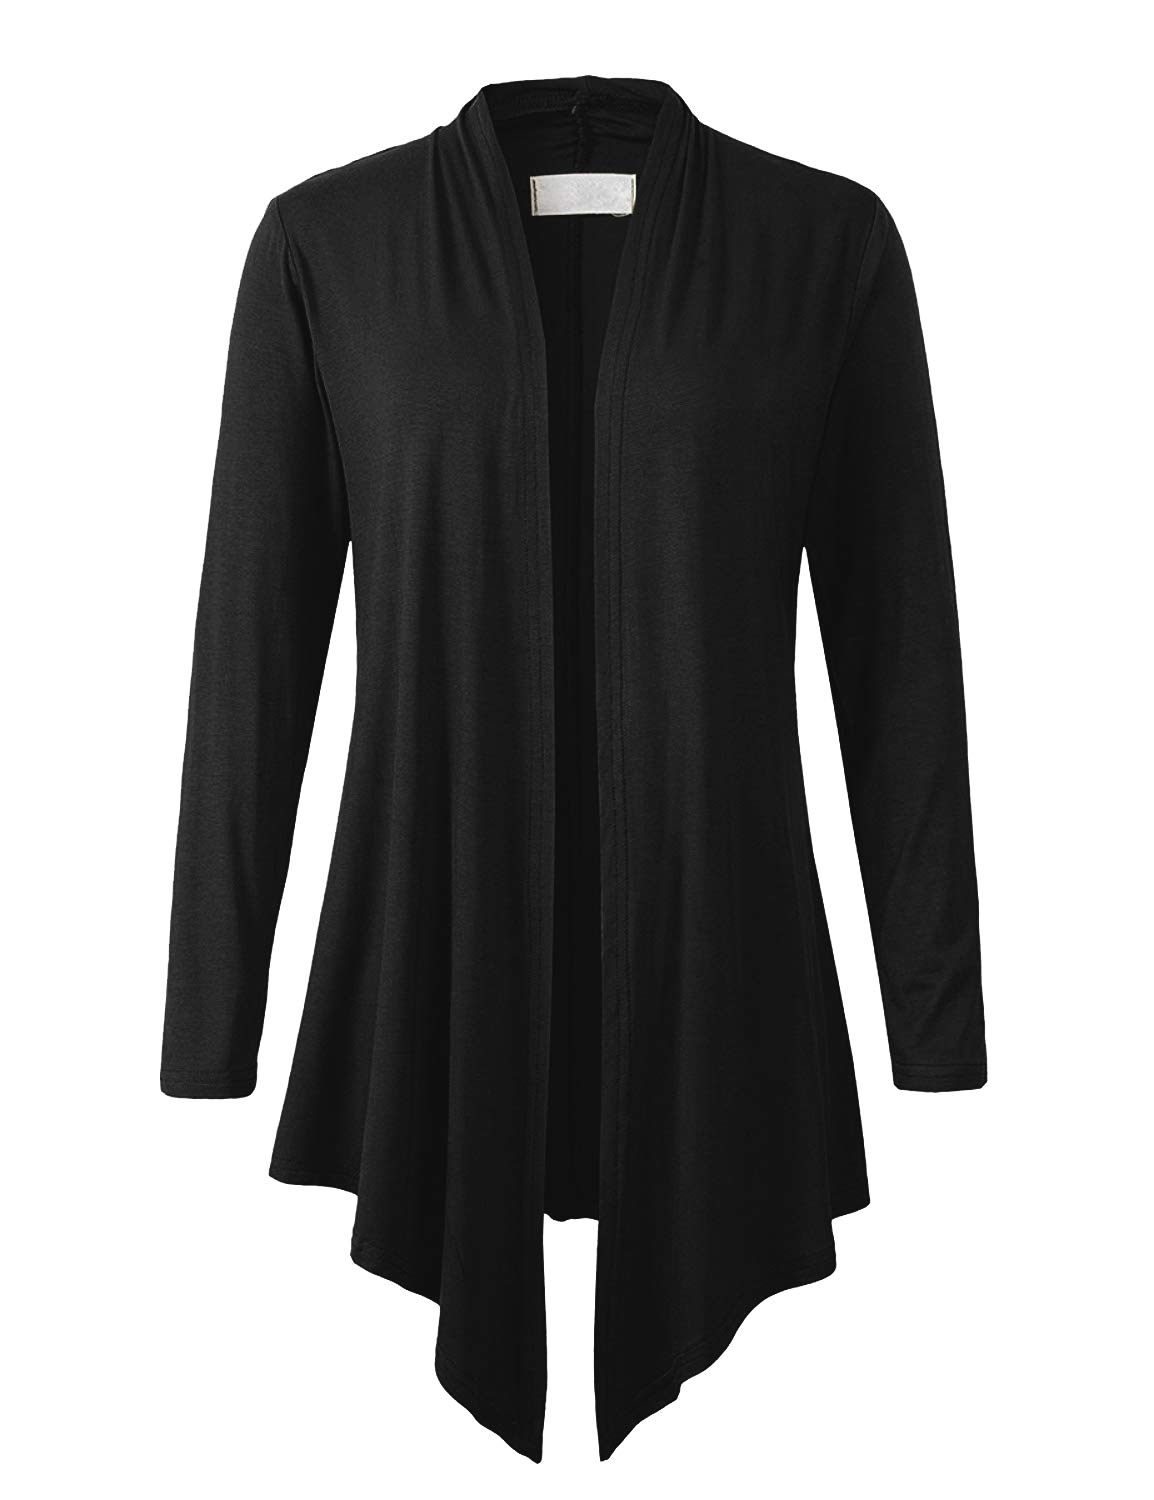 Eanklosco Women's Long Sleeve Drape Open-Front Cardigan Light Weight Irregular Hem Casual Tops (2XL, Black)